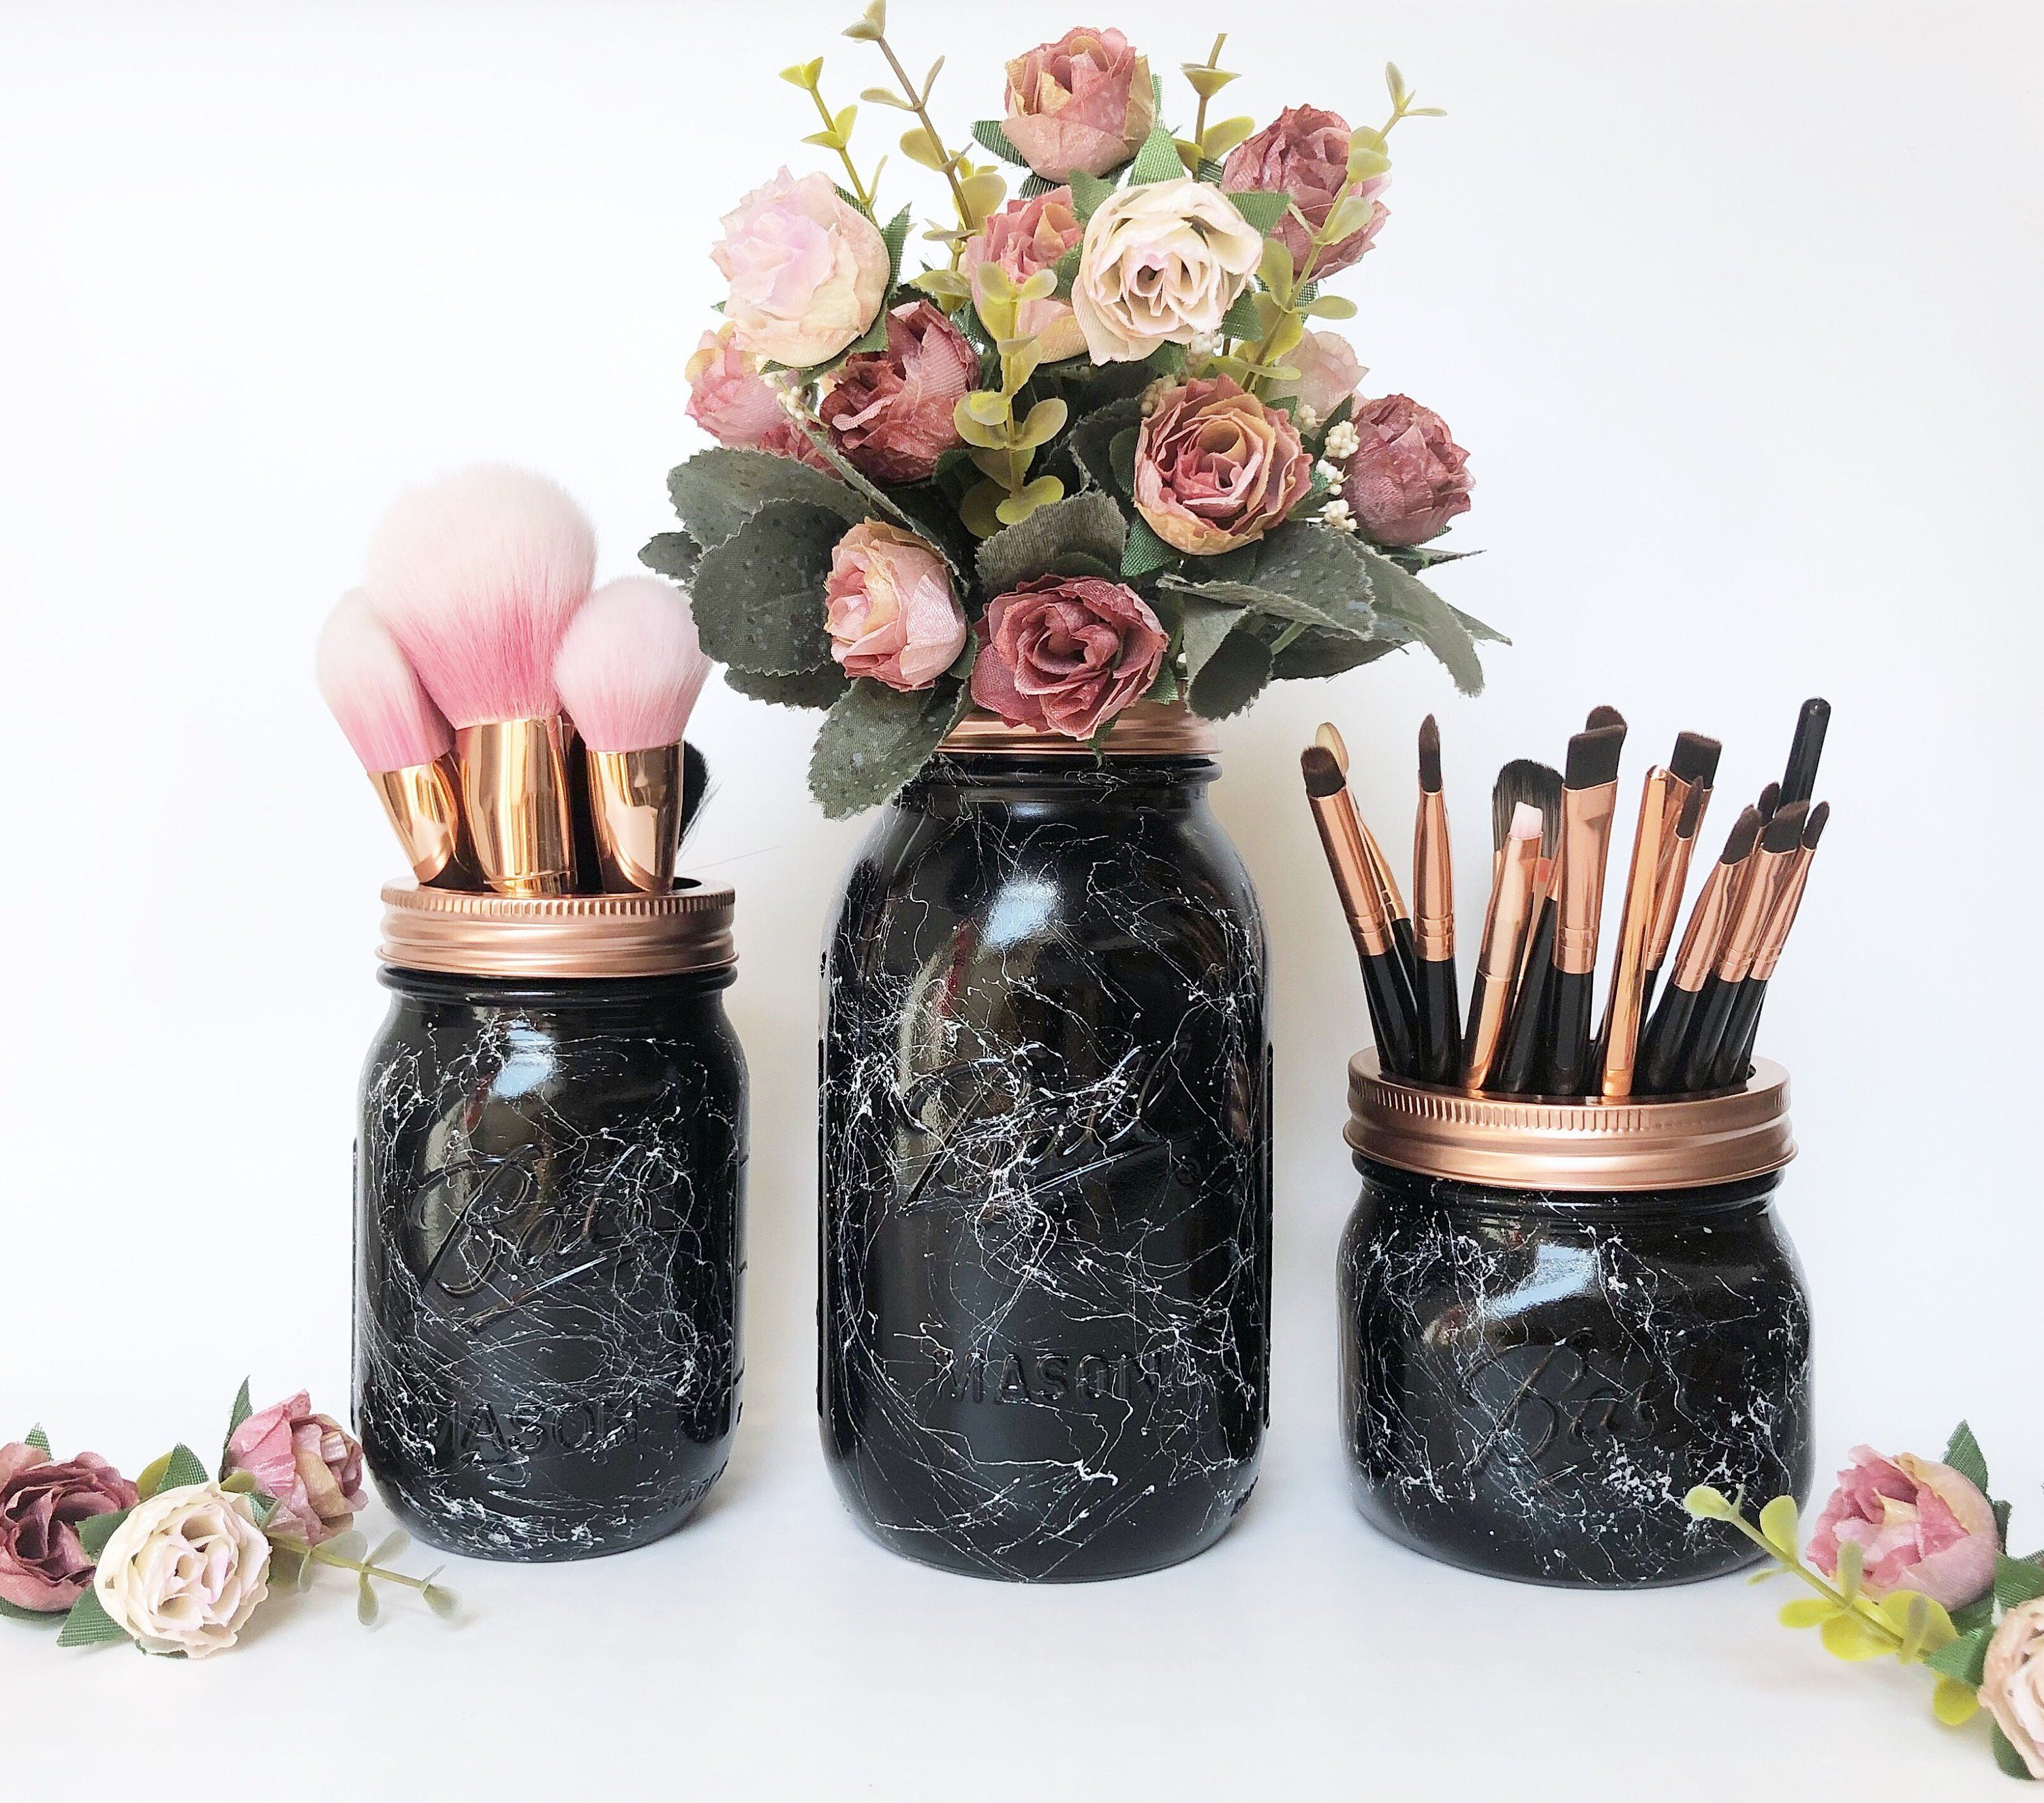 Black and rose gold, marbled decorative jars for my